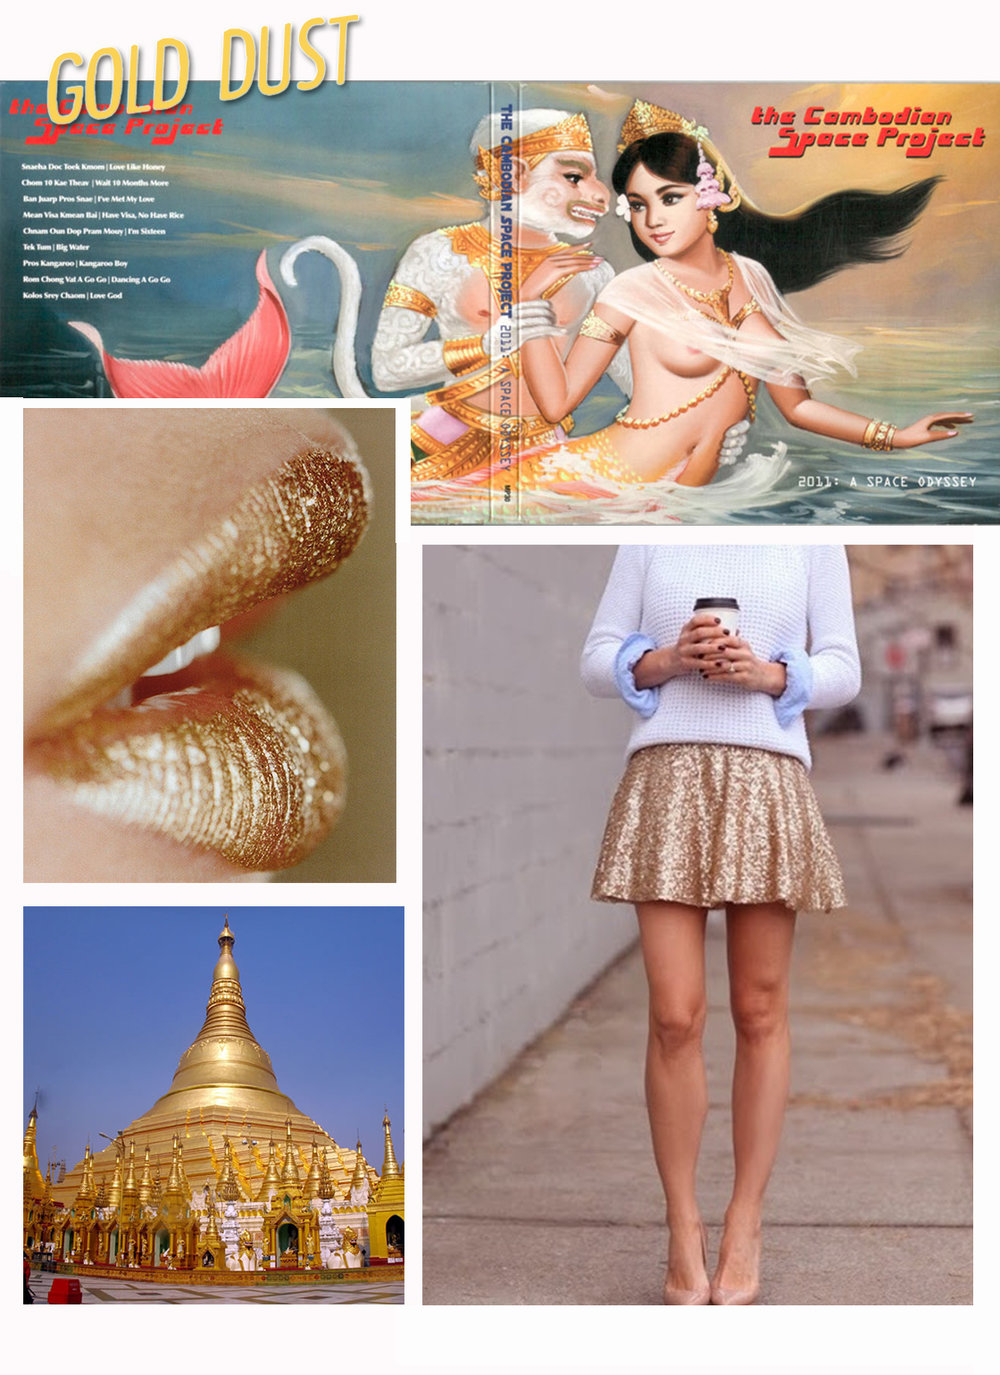 Jessica_Faulkner_Spring_2015_Mood_Board_Gold_Dust.jpg